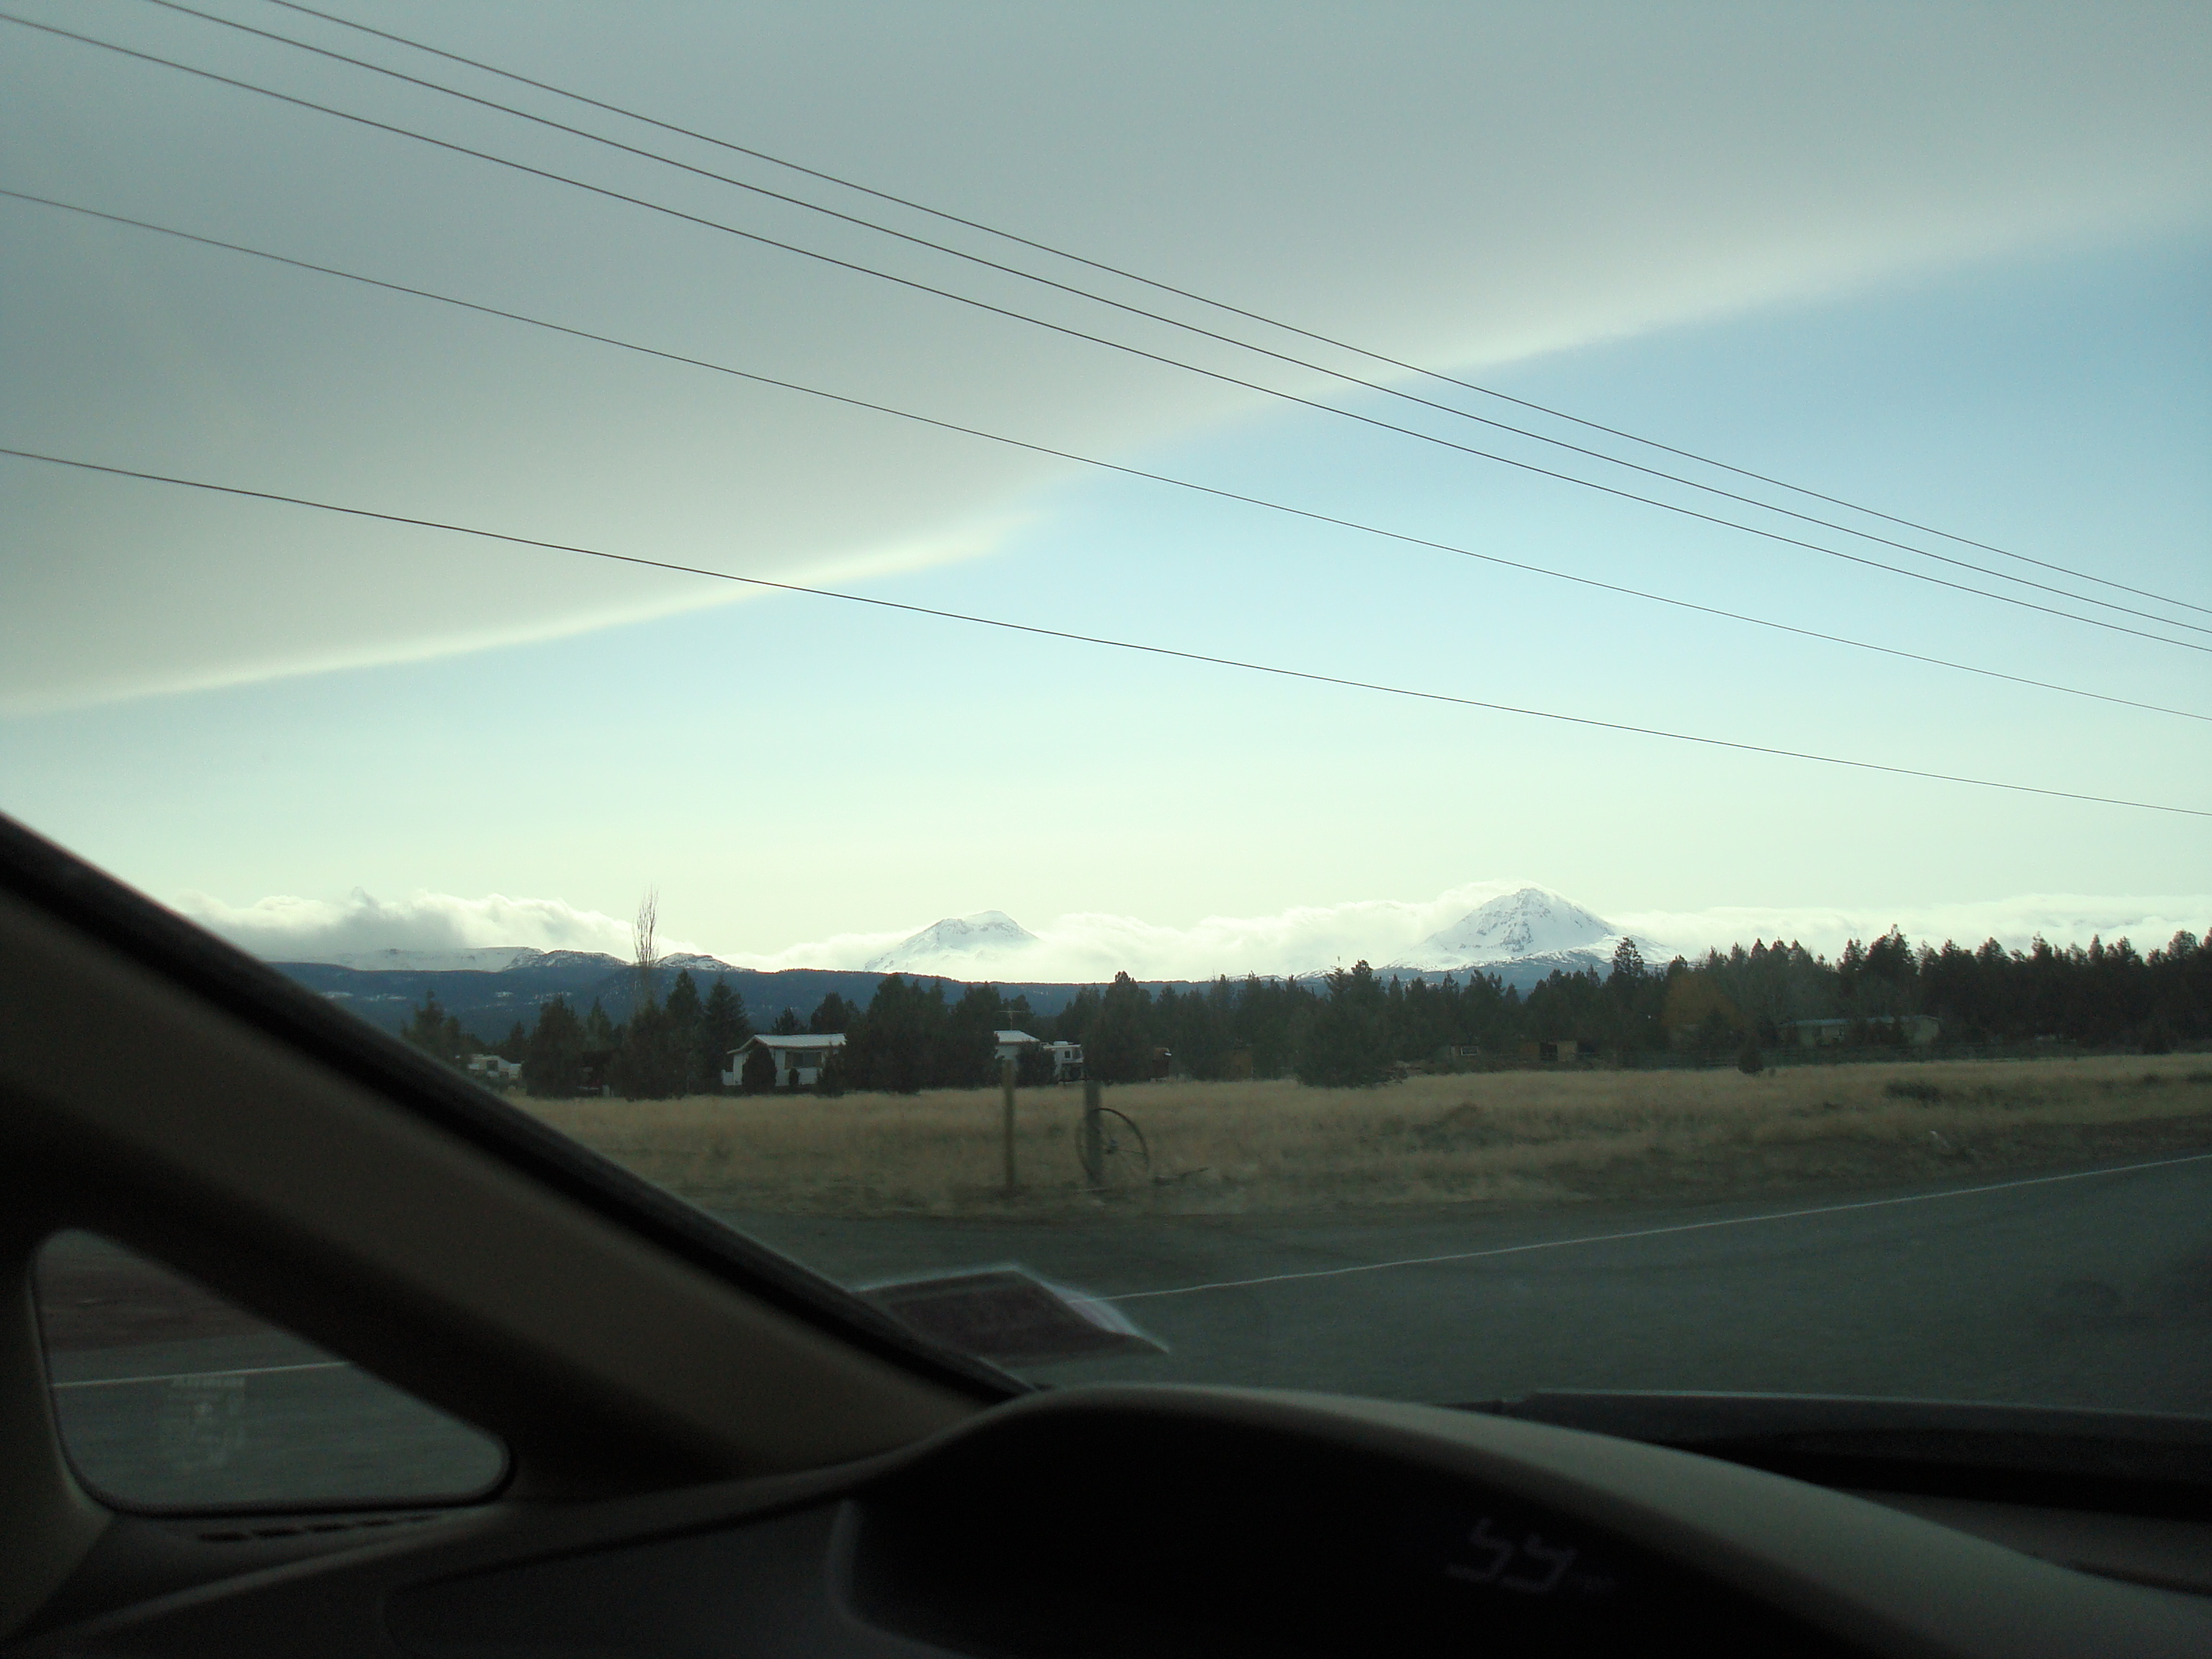 On the road outside Bend (Cascade peaks: I can't tell if the Three Sisters or Mt. Washington from the photo)